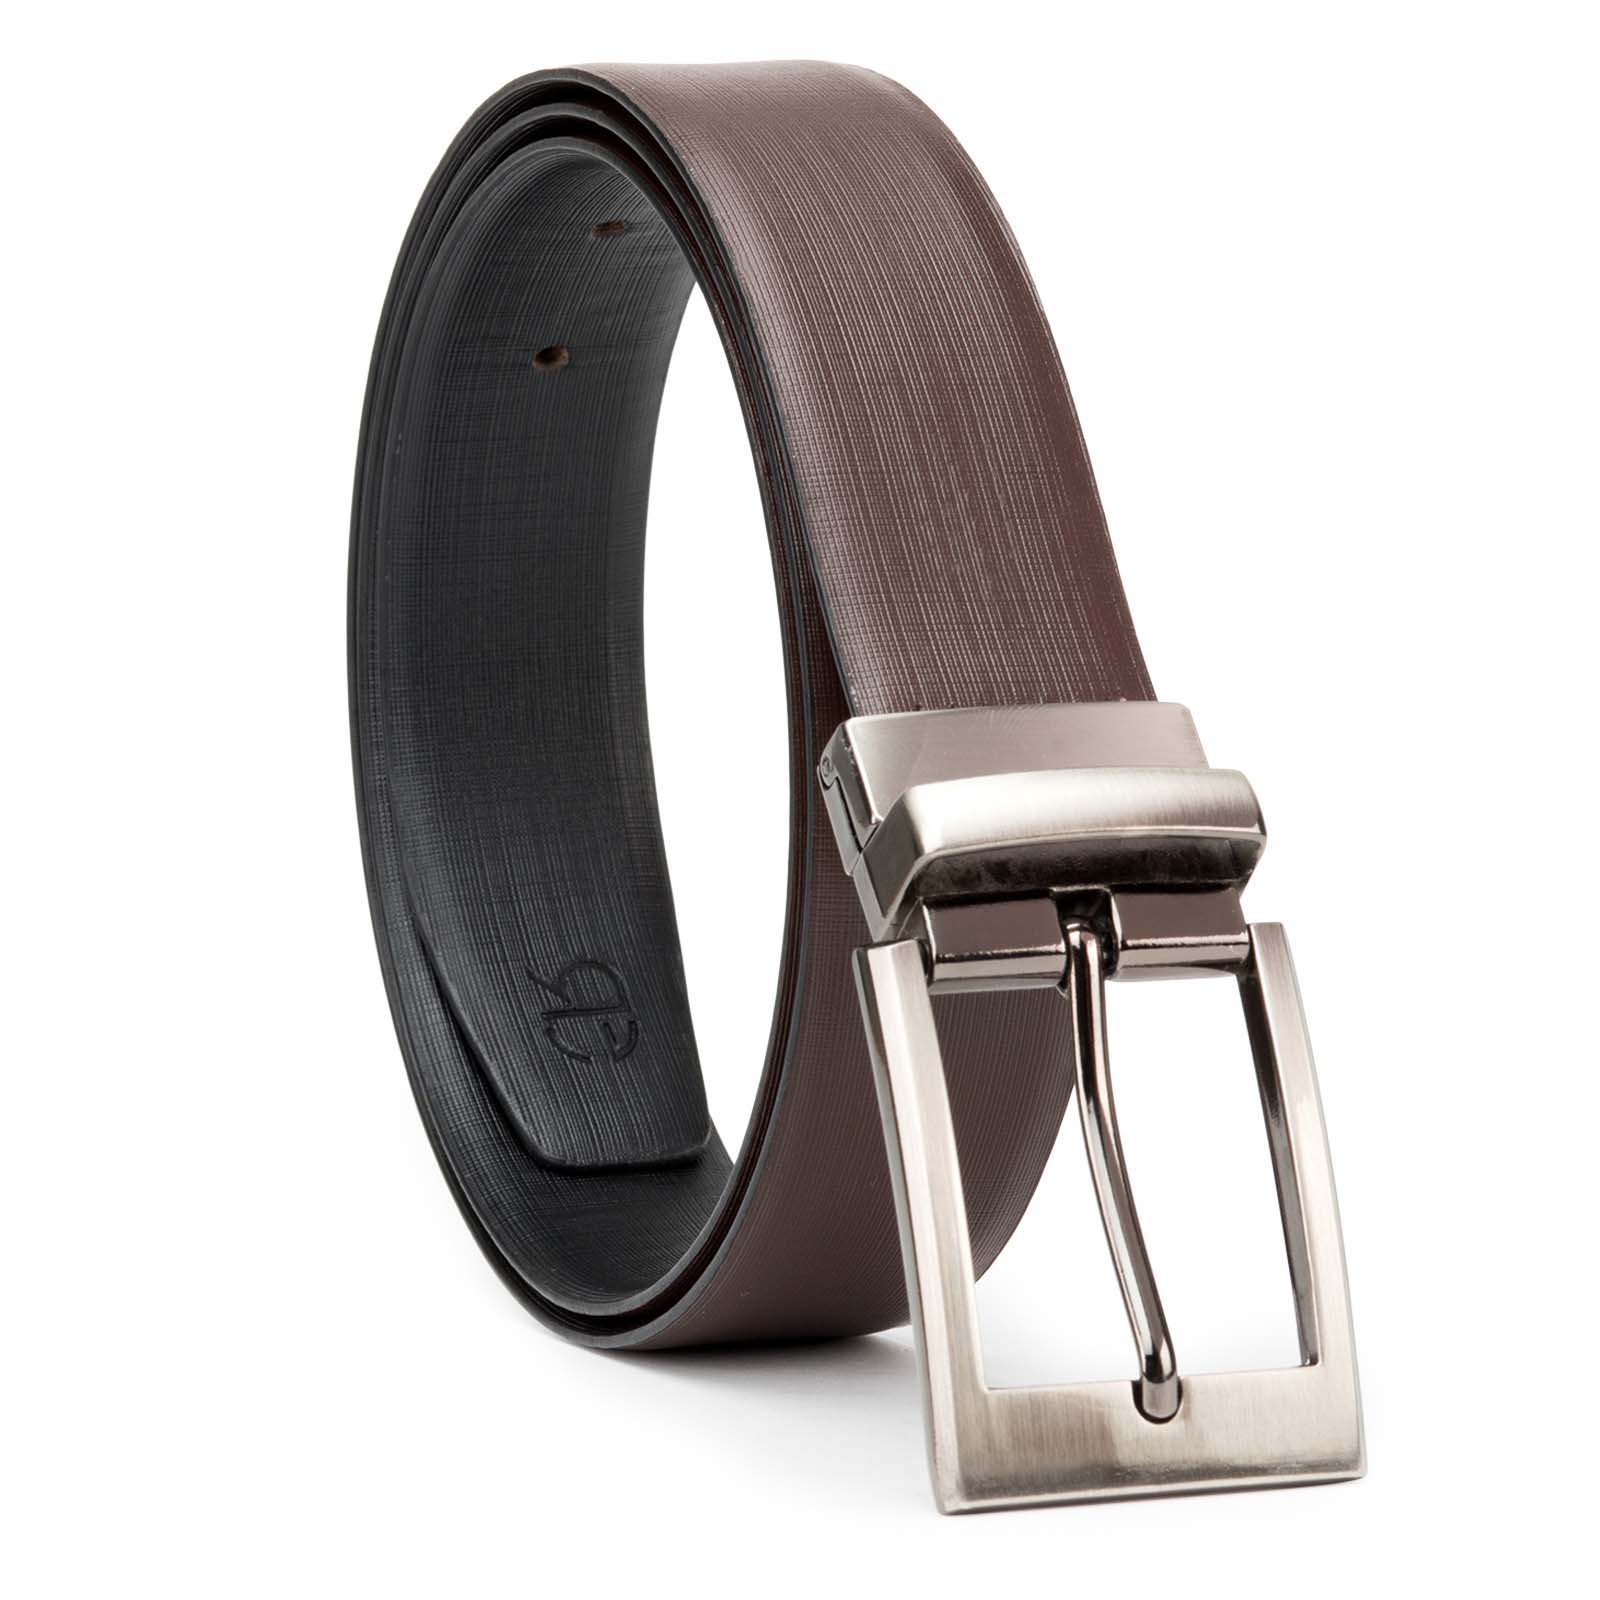 Black and Brown Cross Linner Design Leather Men's Formal Belts